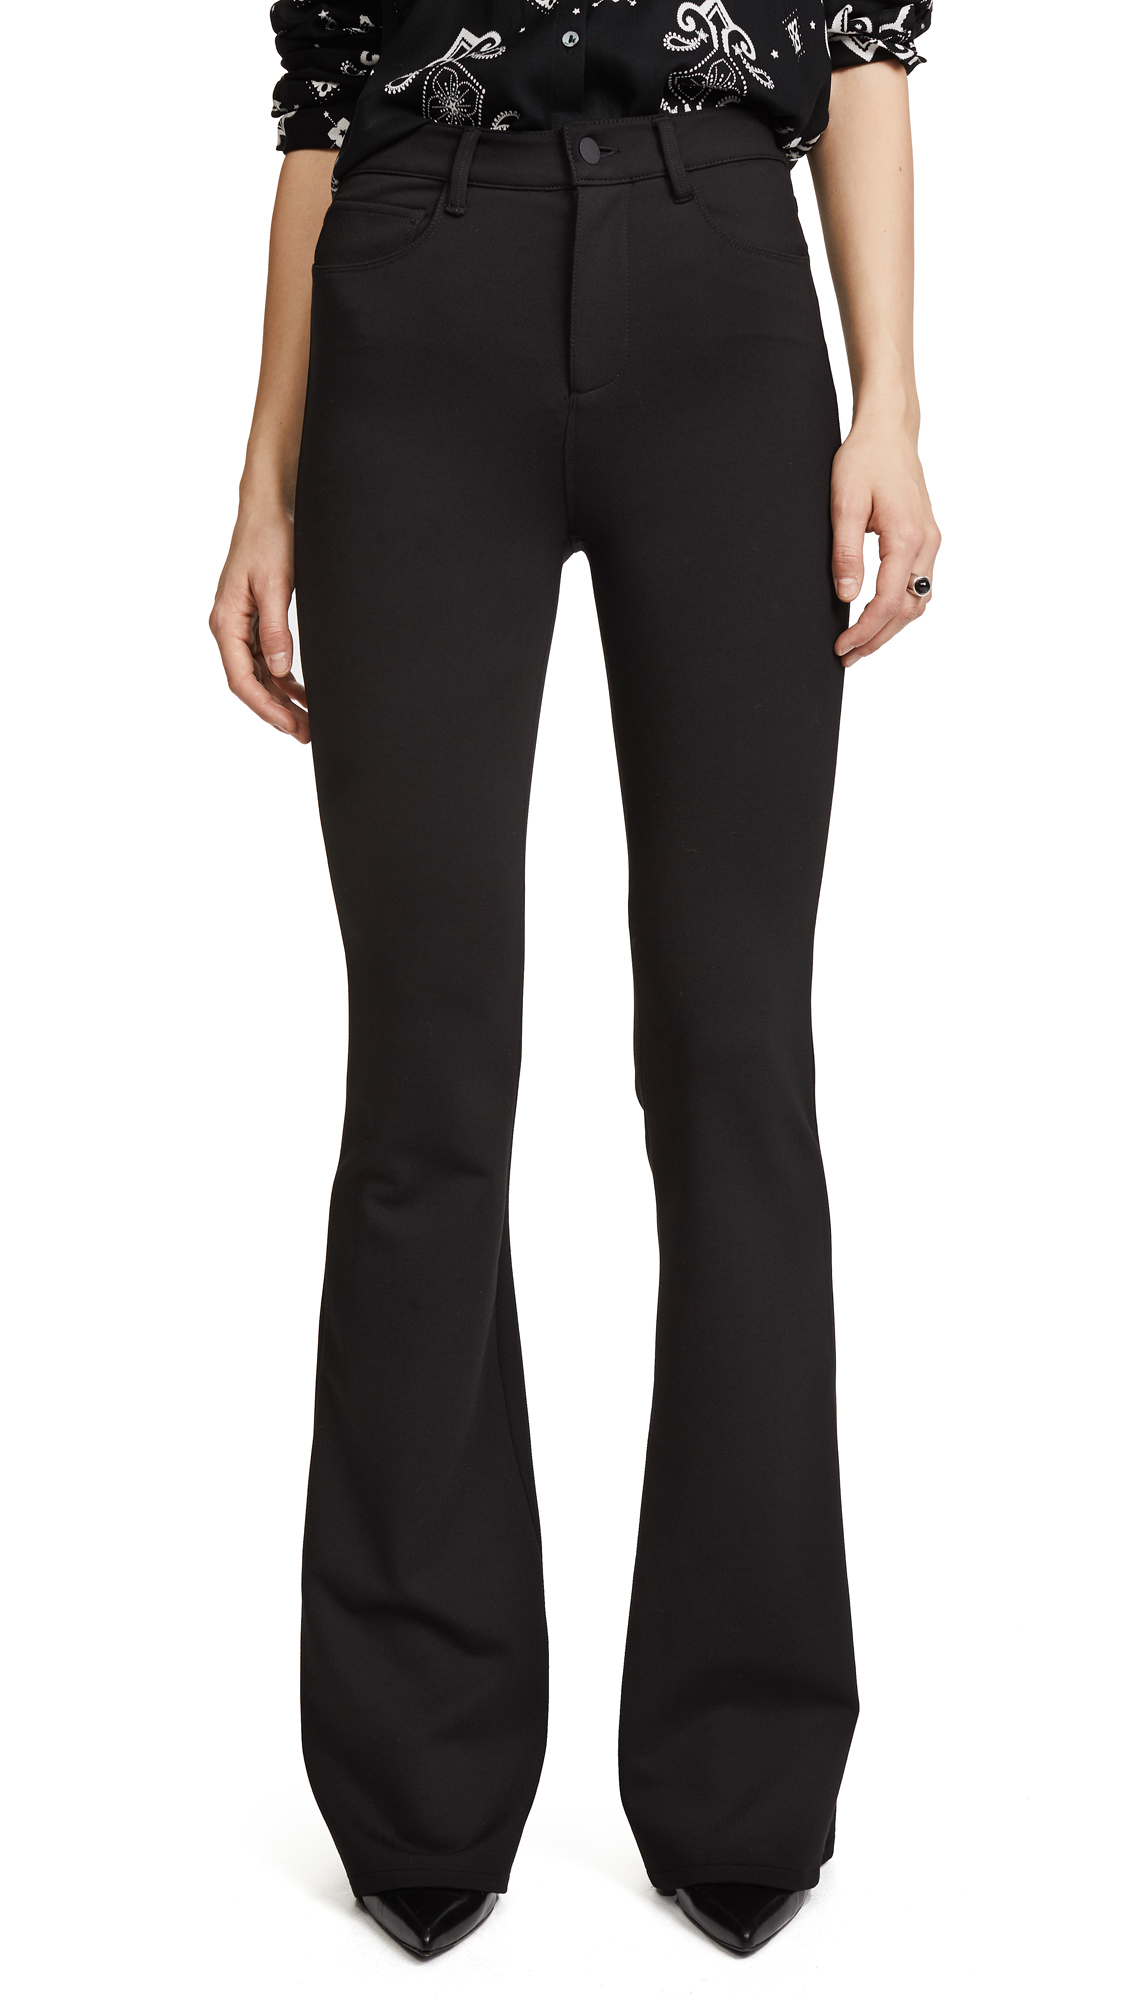 Lola High Rise Bell Bottom Pants